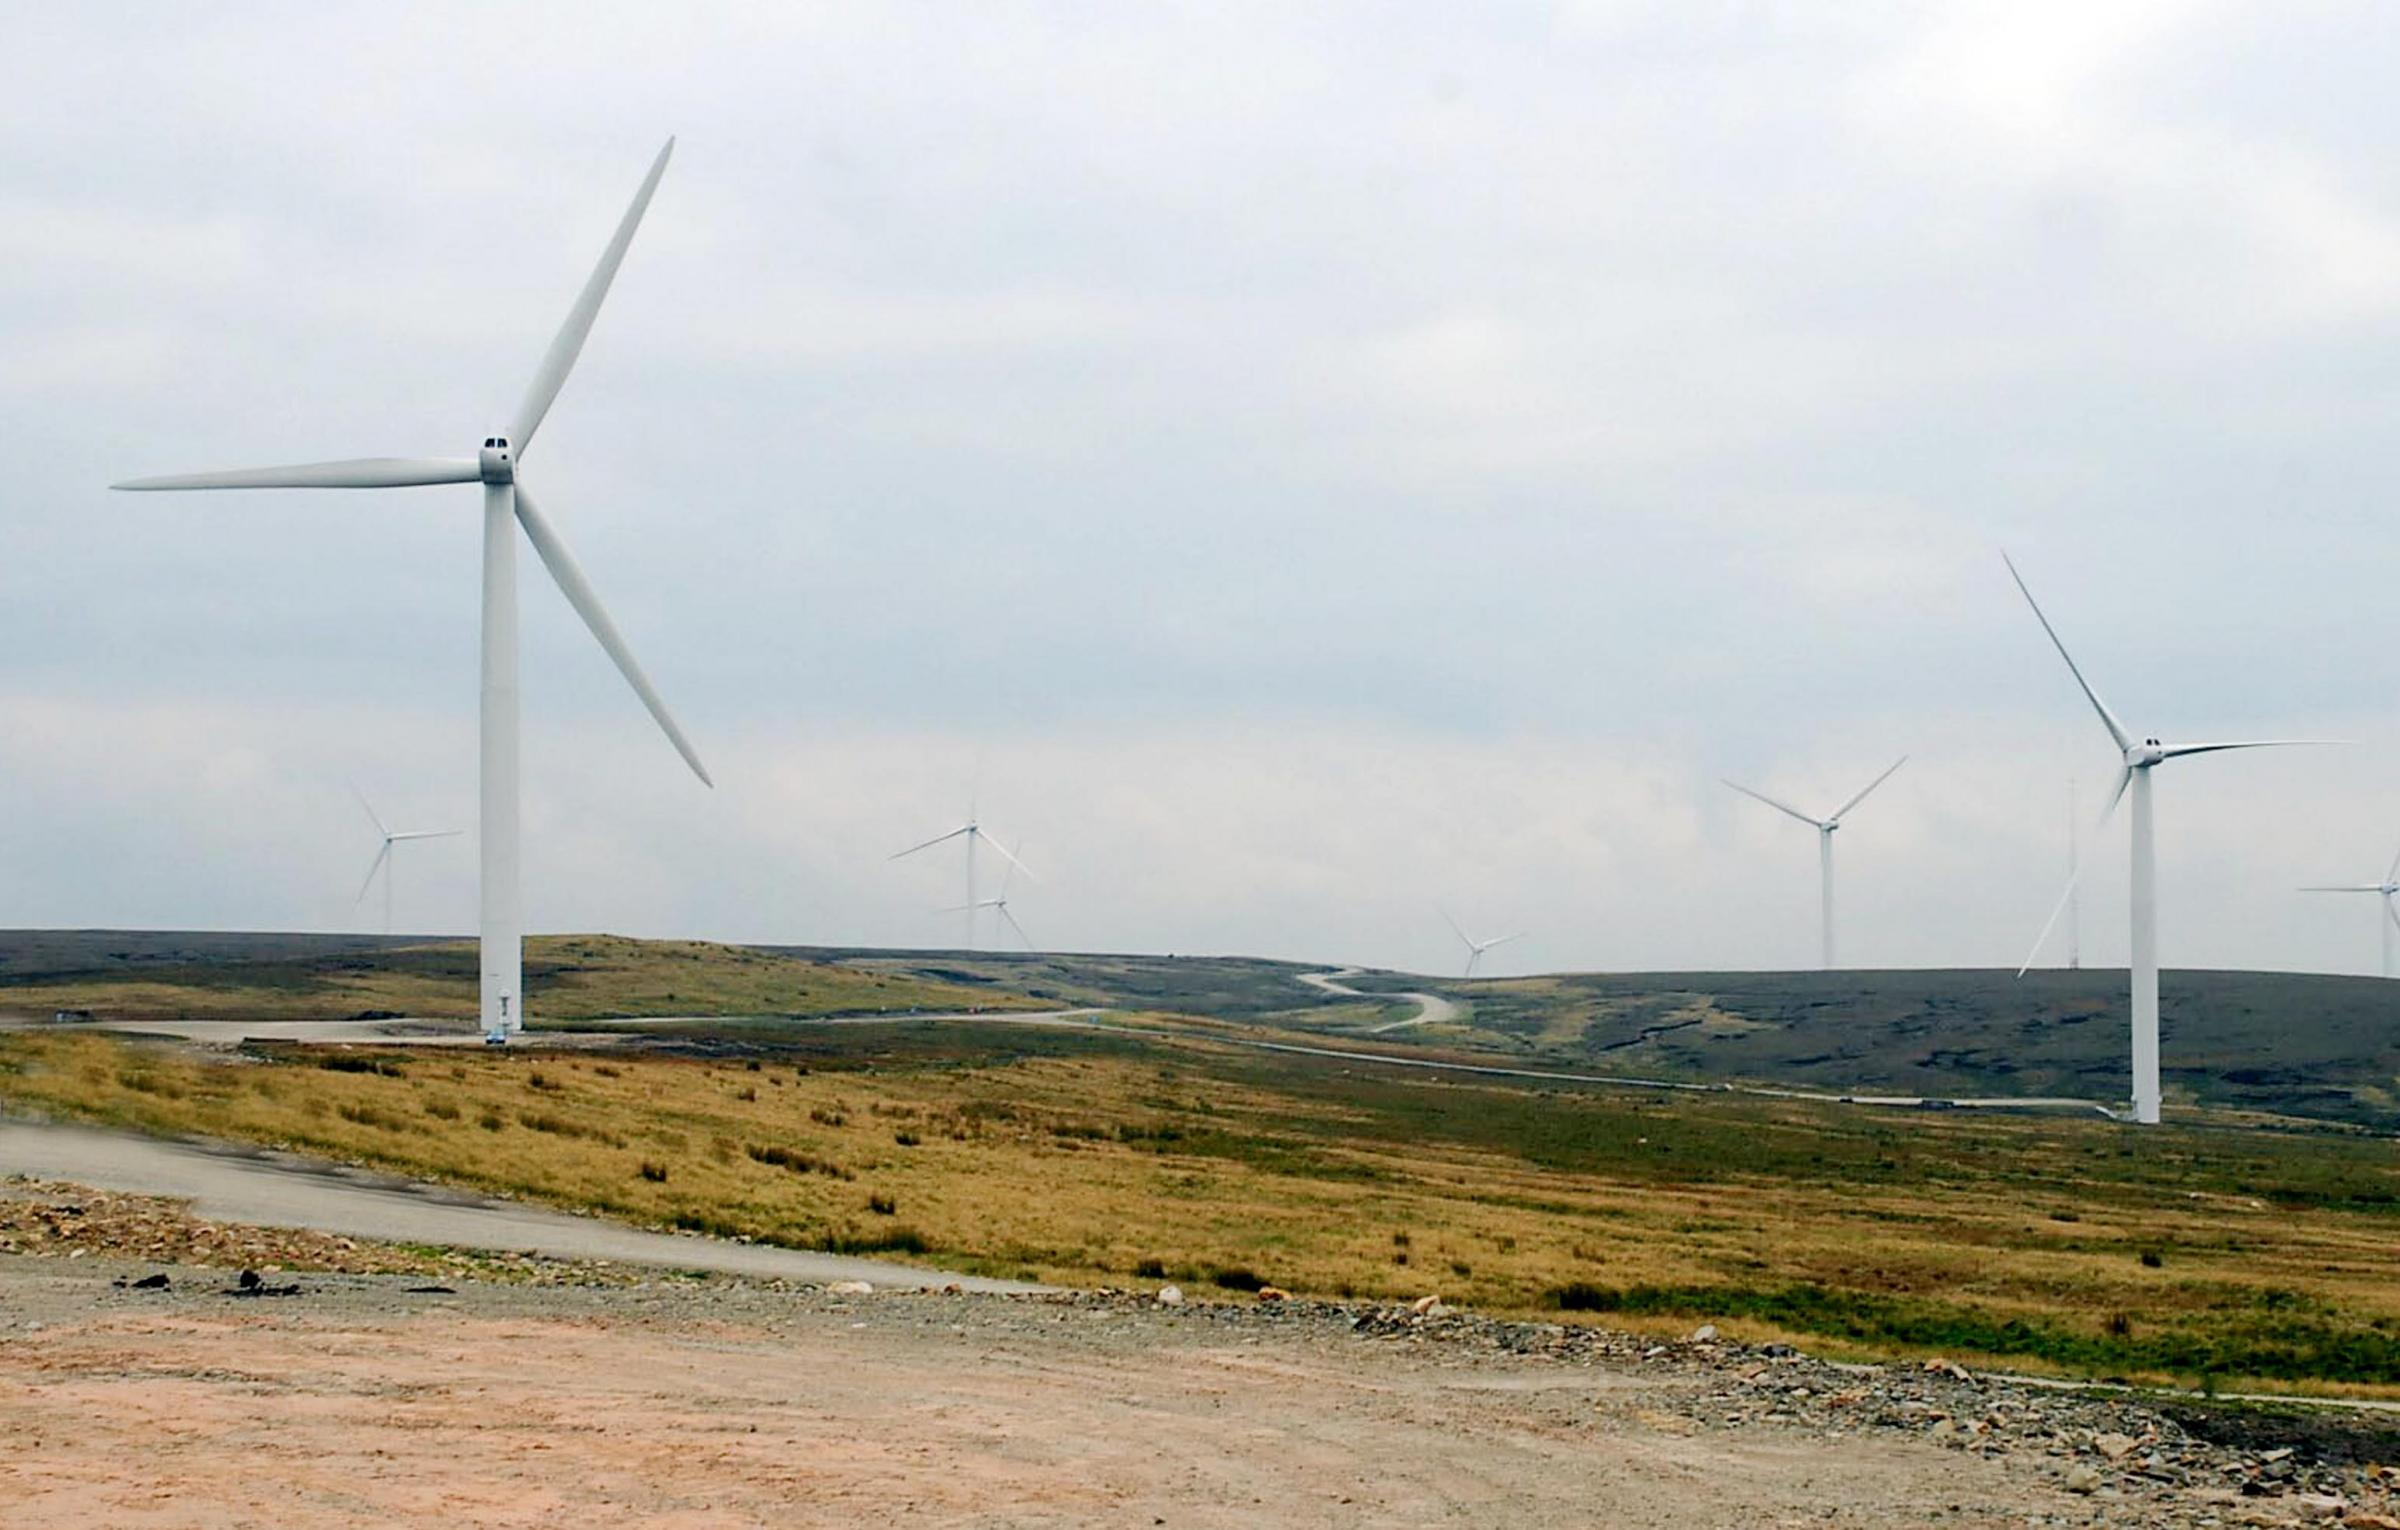 The Scout Moor wind farm already has 26 turbines